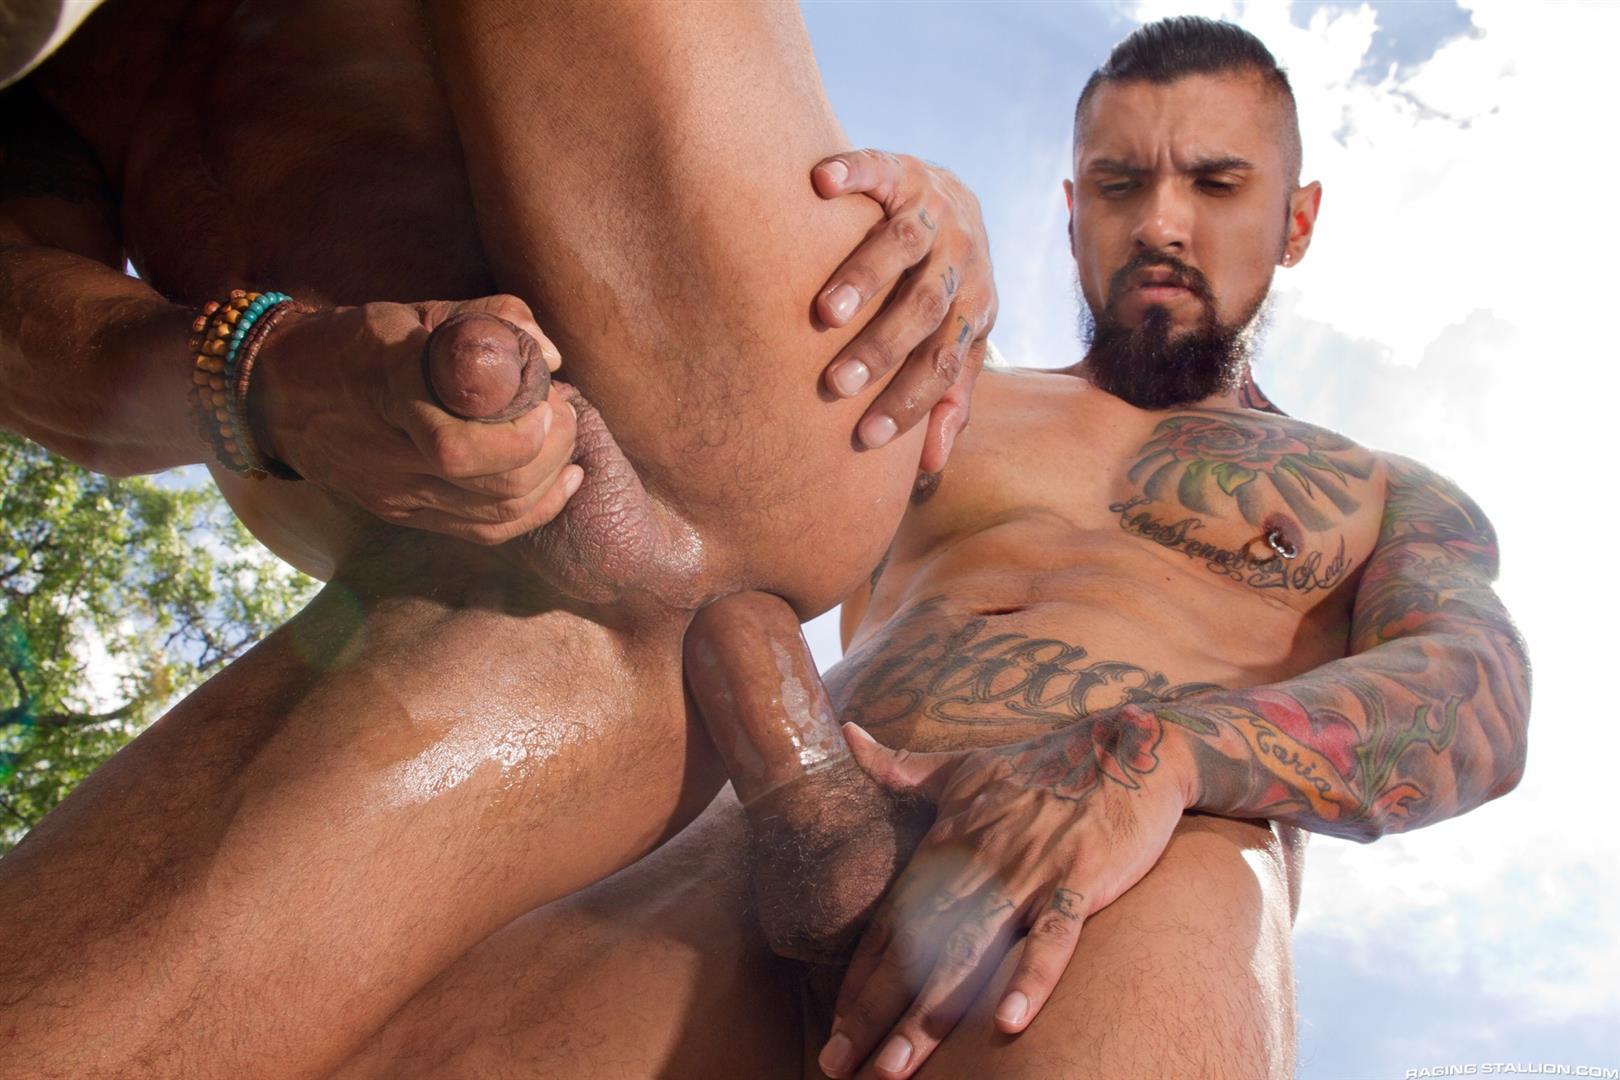 Raging Stallion Boomer Banks and David Benjamin Big Uncut Cock Fucking Amateur Gay Porn 12 Boomer Banks Fucking In The Back Of A Pickup With His Big Uncut Cock